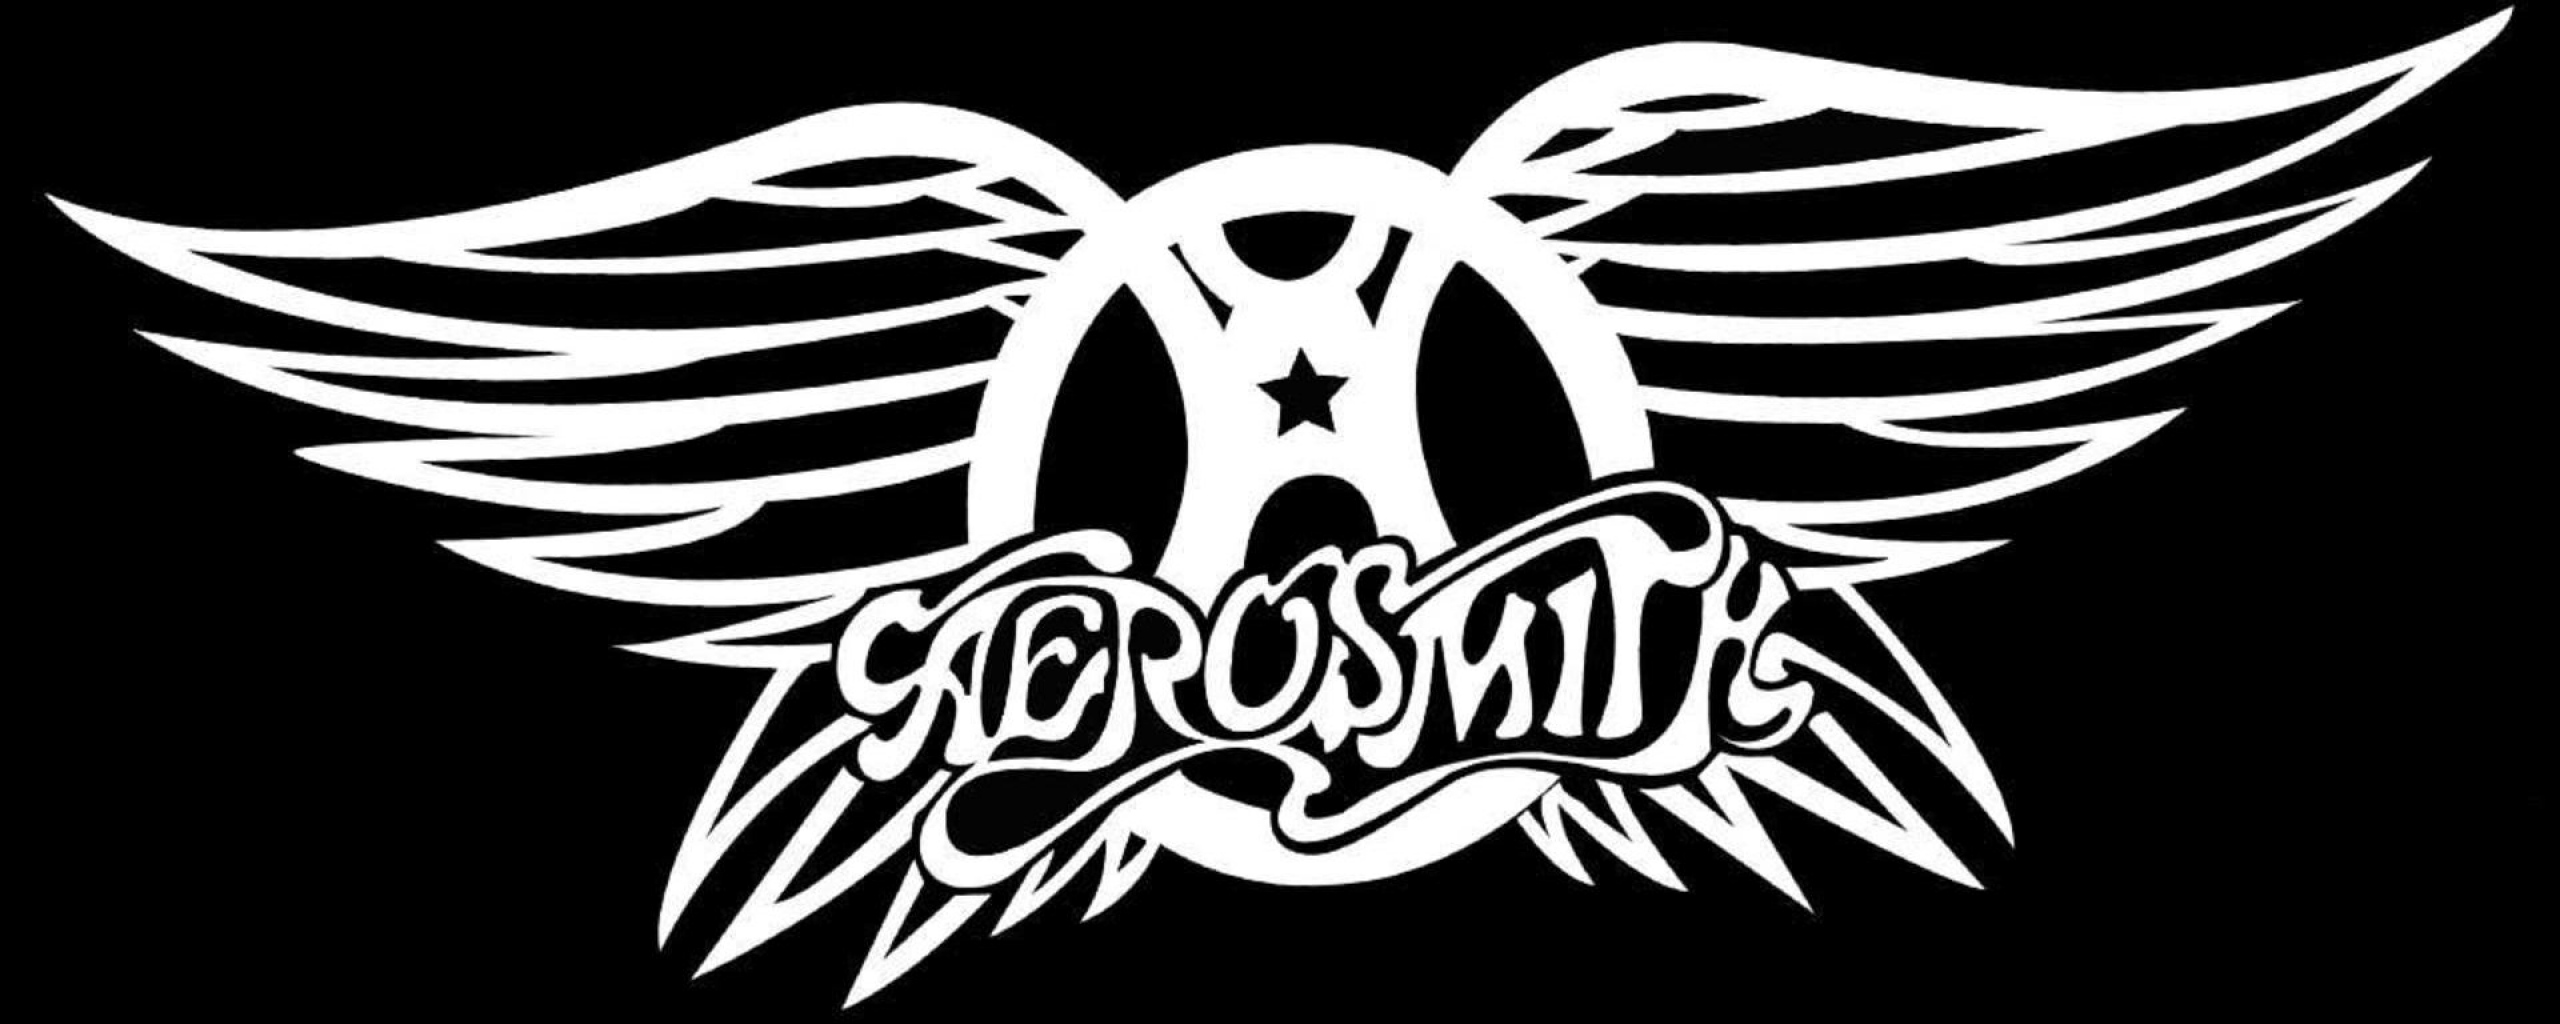 Aerosmith Wallpapers High Quality